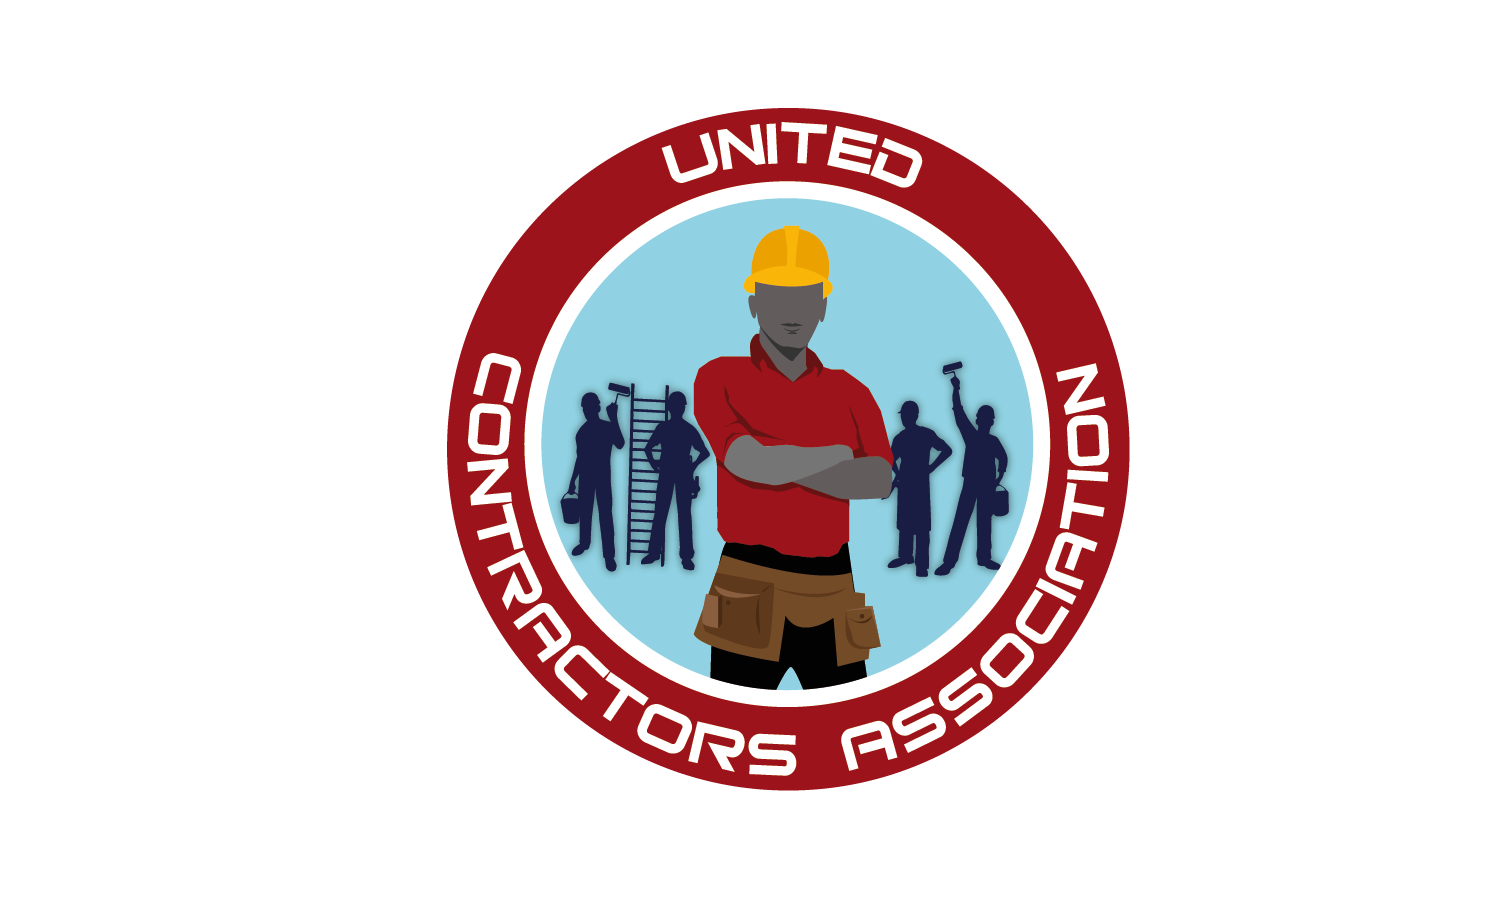 LOGO UNITED CONTRACTORS ASSOCIATION PNG